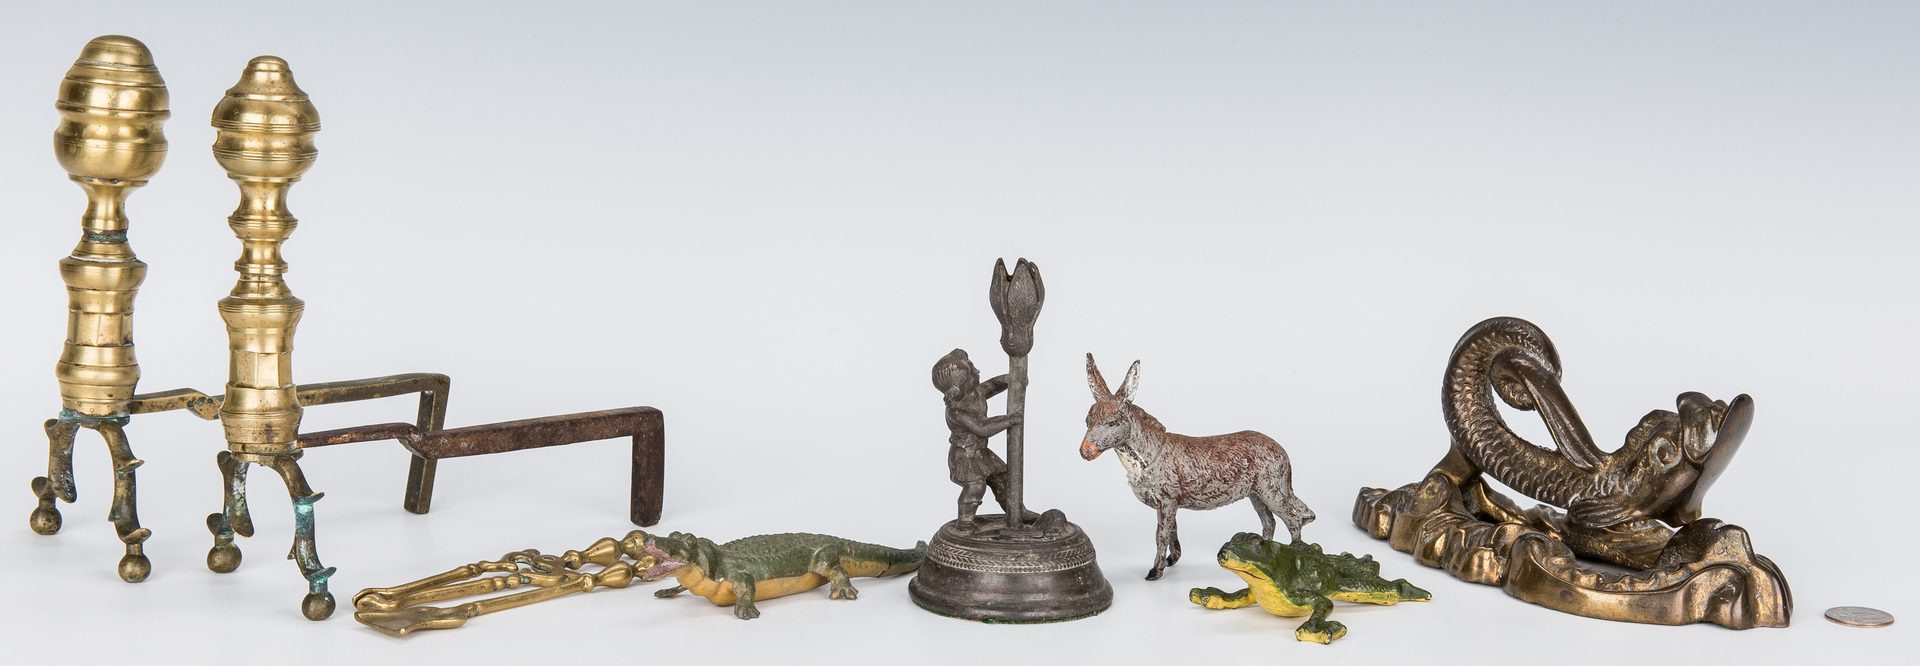 Lot 55: Group of Brass & Iron Items, incl. miniatures